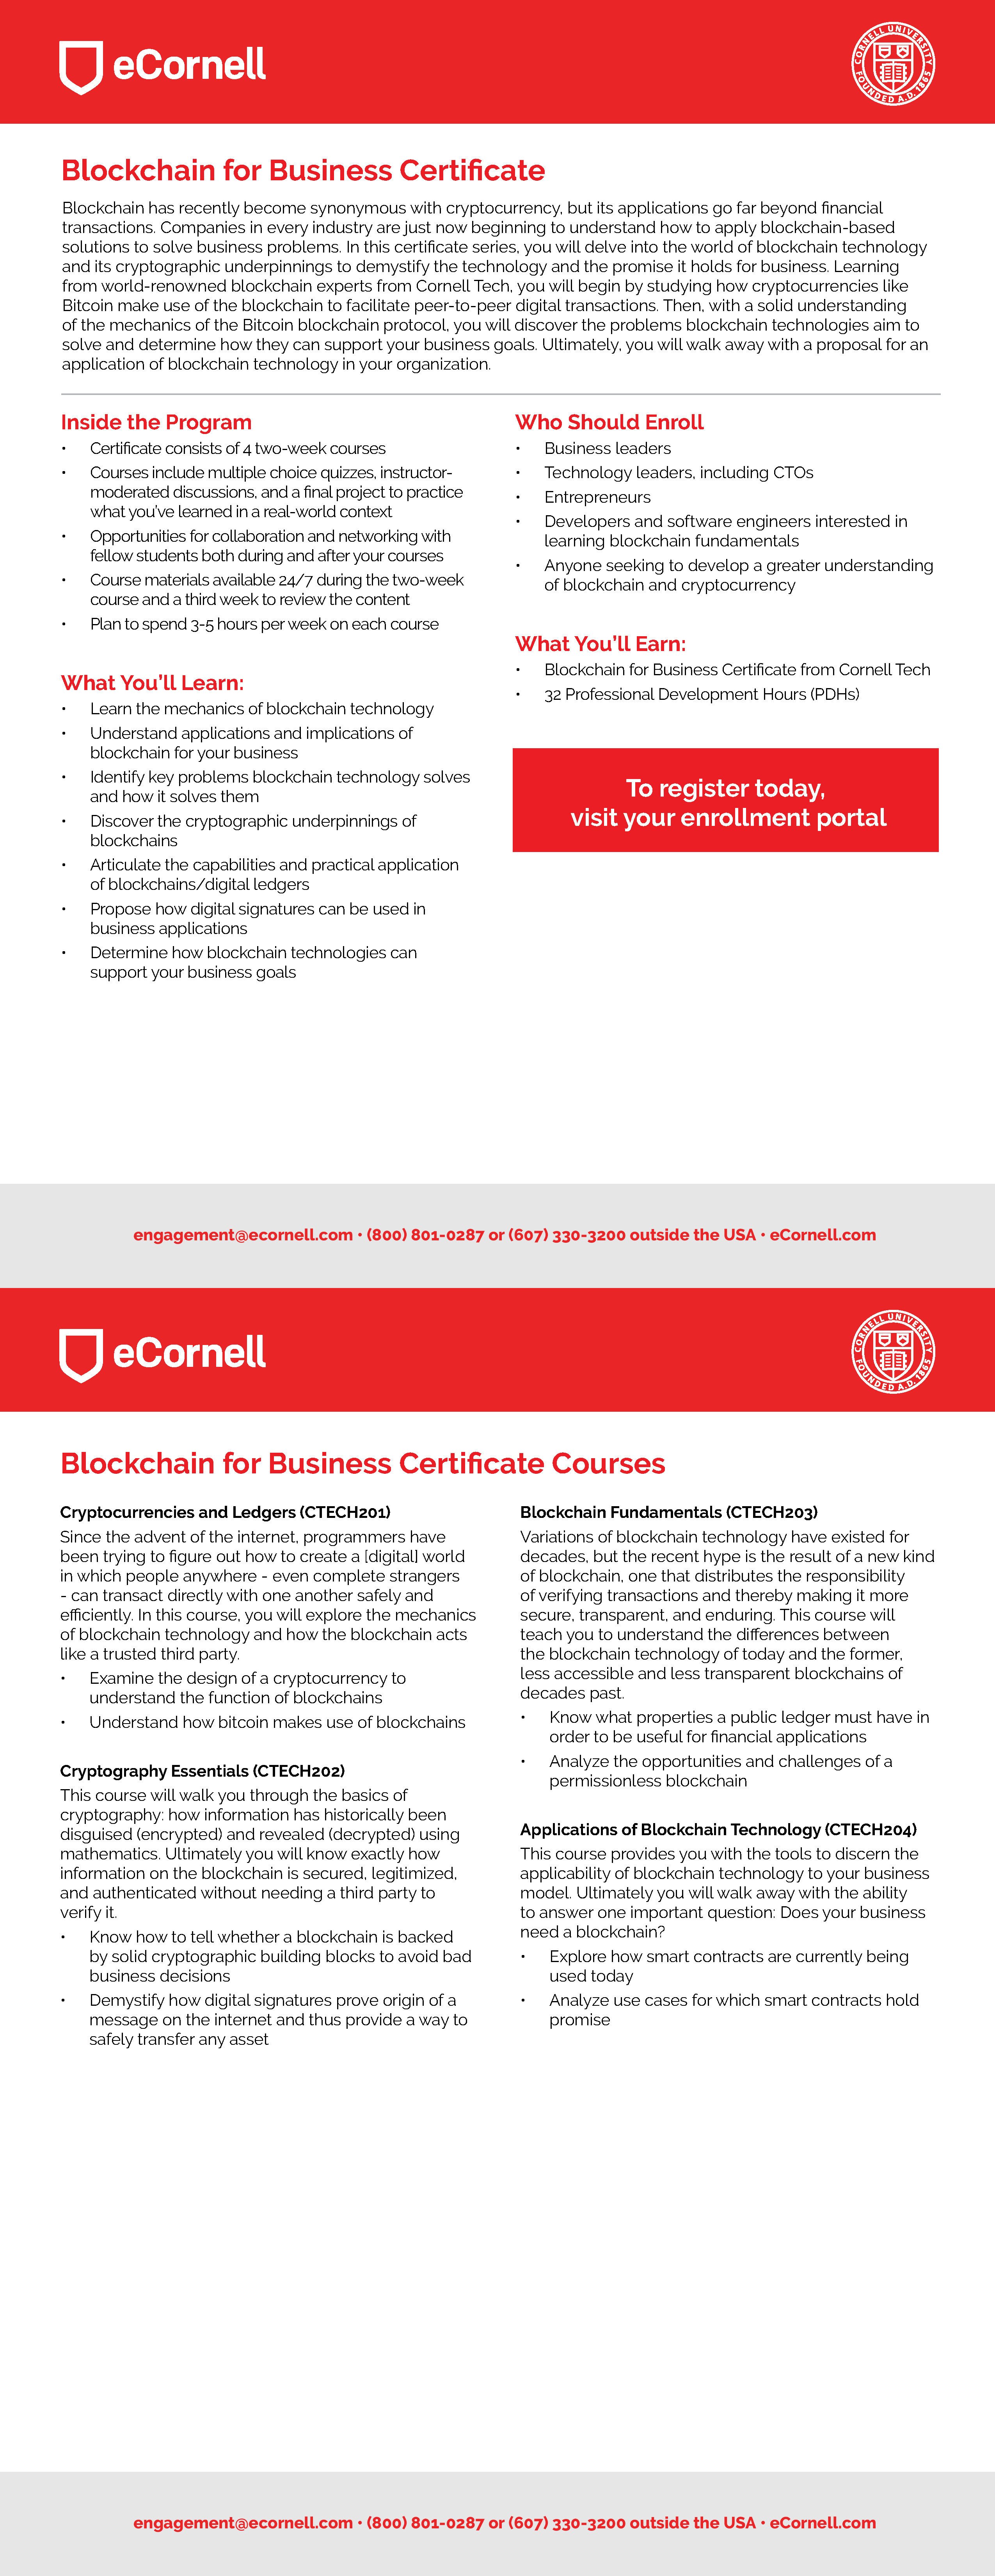 Blockchain for Business Flyer for Corporations